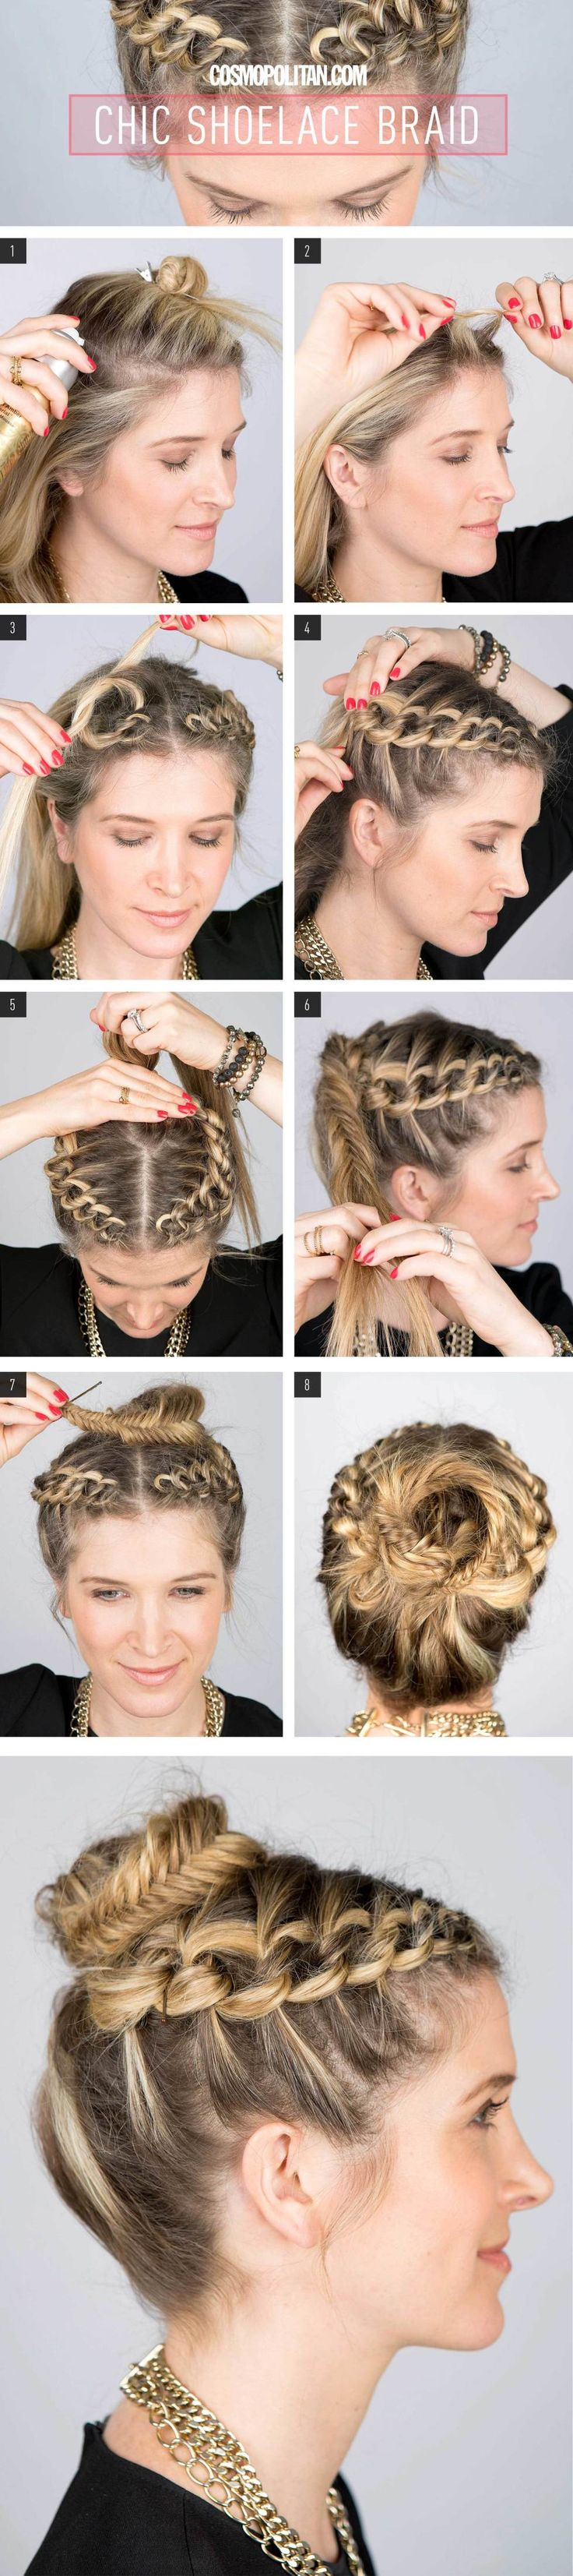 How To Create A Shoelace Braid Updo... maybe just do it on one side and not part in the middle?